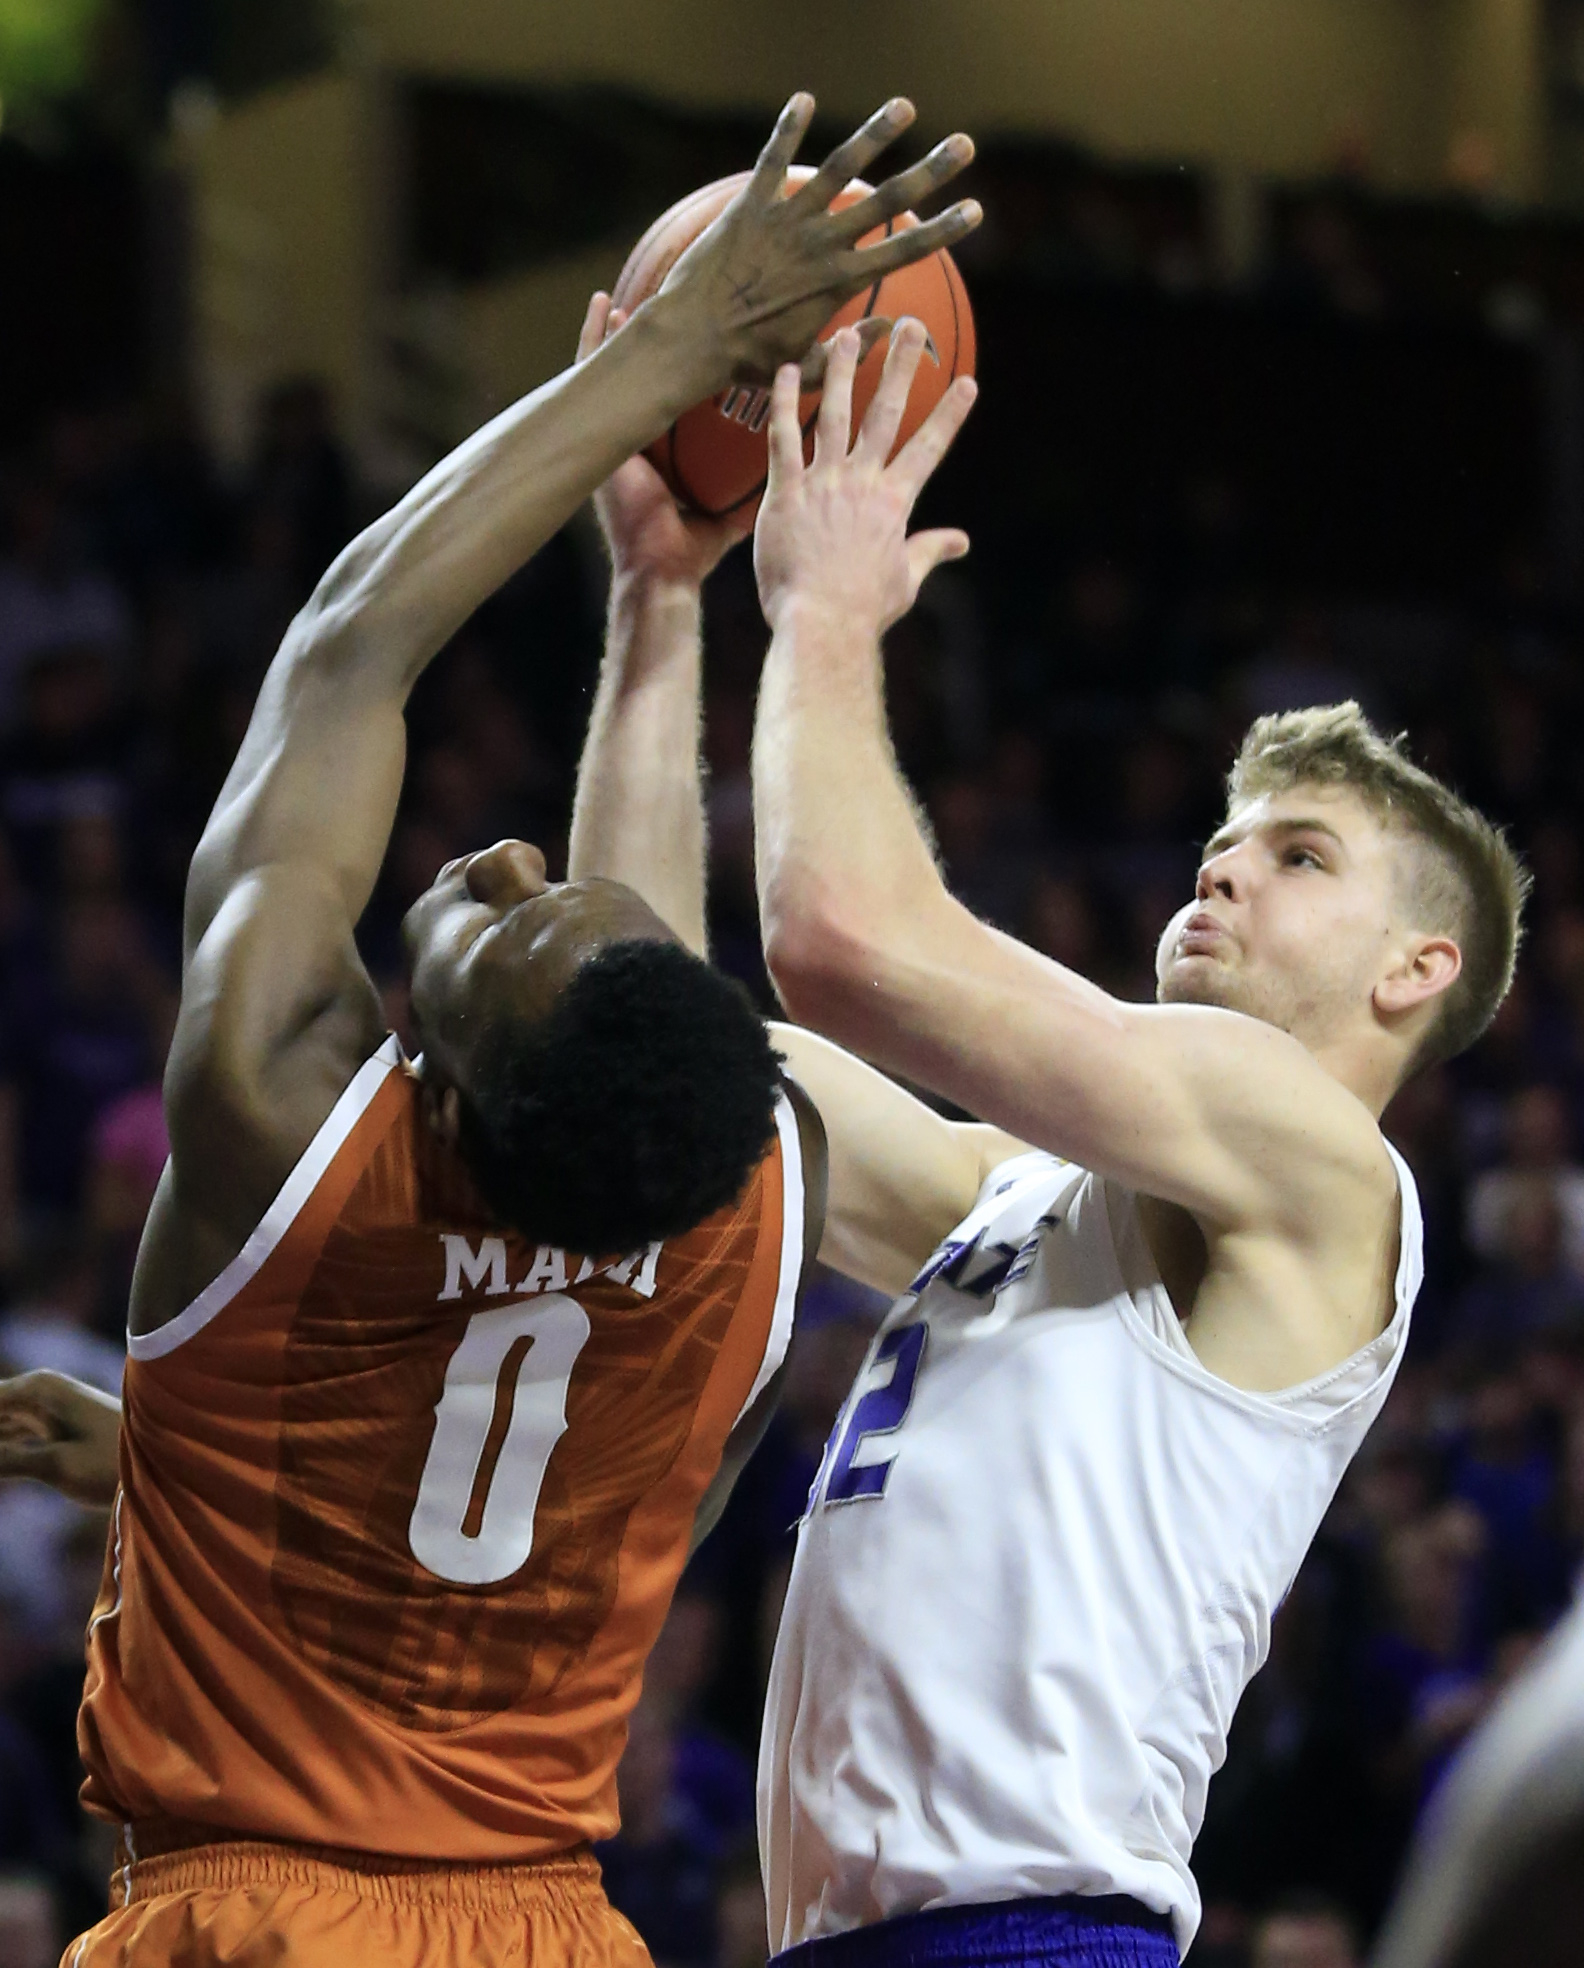 Kansas State forward Dean Wade (32) shoots while covered by Texas guard Tevin Mack (0) during the second half of an NCAA college basketball game in Manhattan, Kan., Monday, Feb. 22, 2016. (AP Photo/Orlin Wagner)